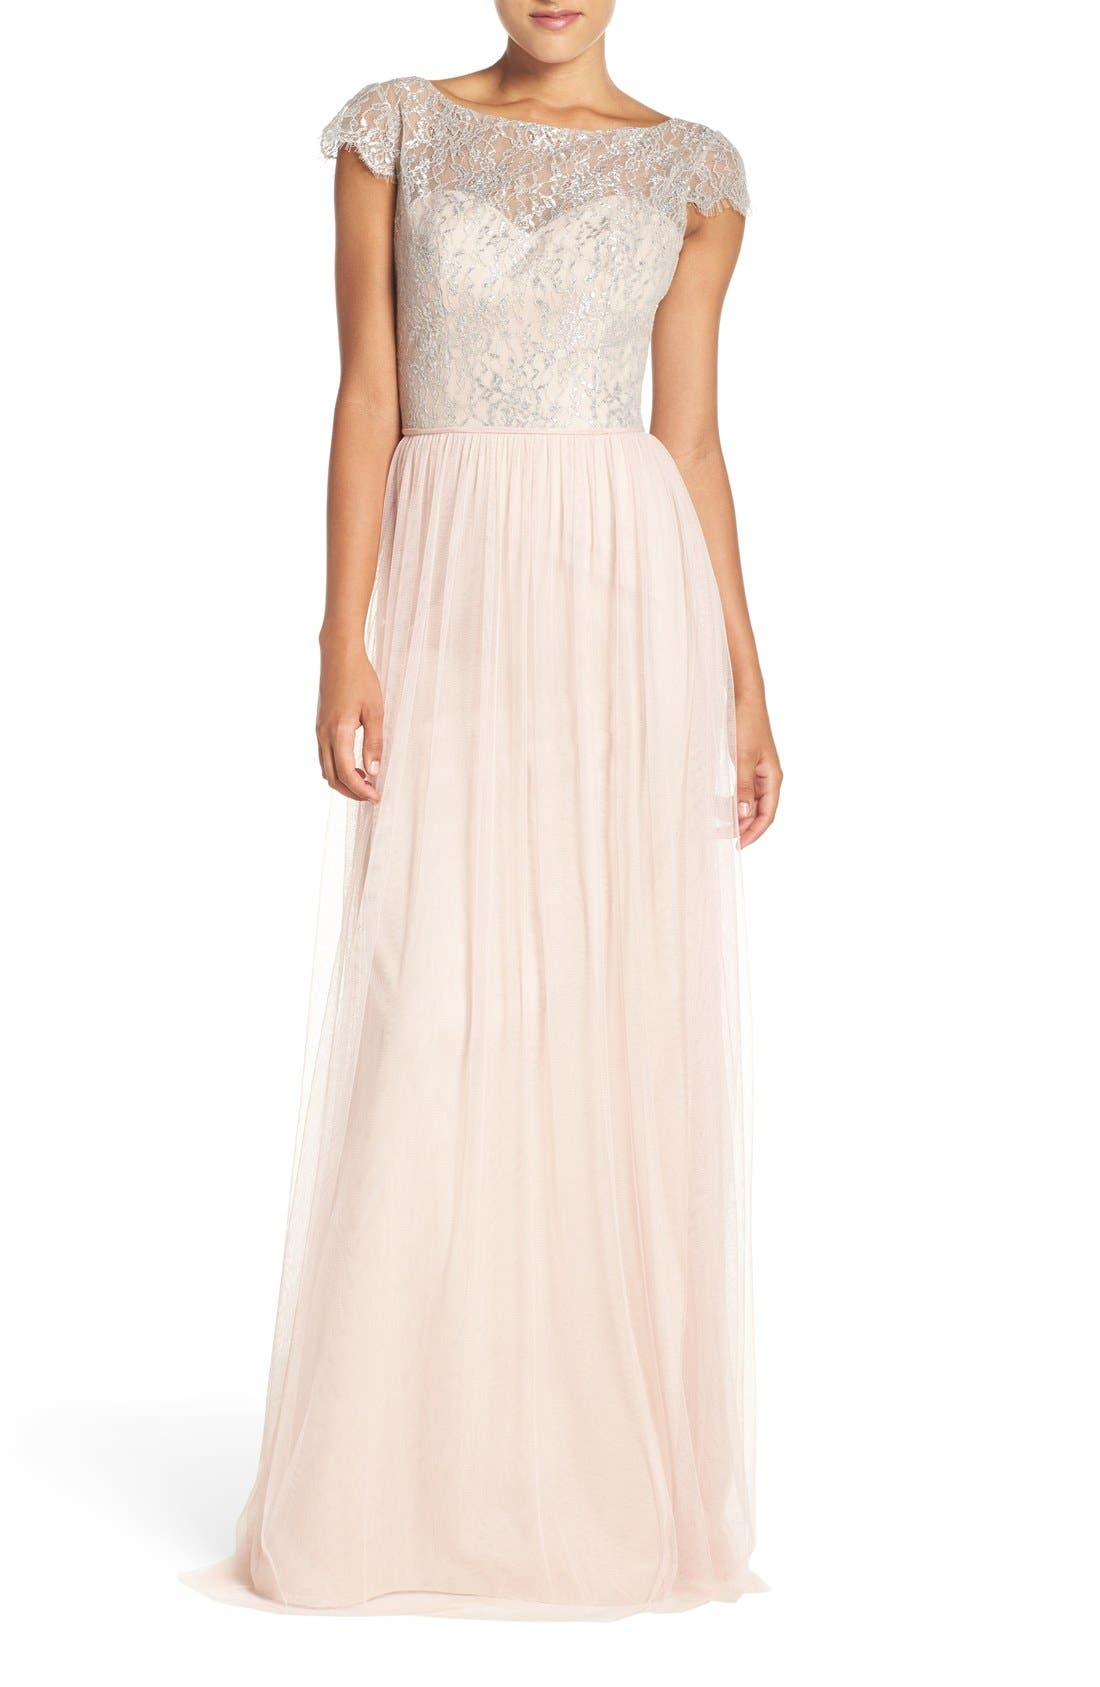 Hayley Paige Occasions Cap Sleeve Metallic Lace & Tulle Gown